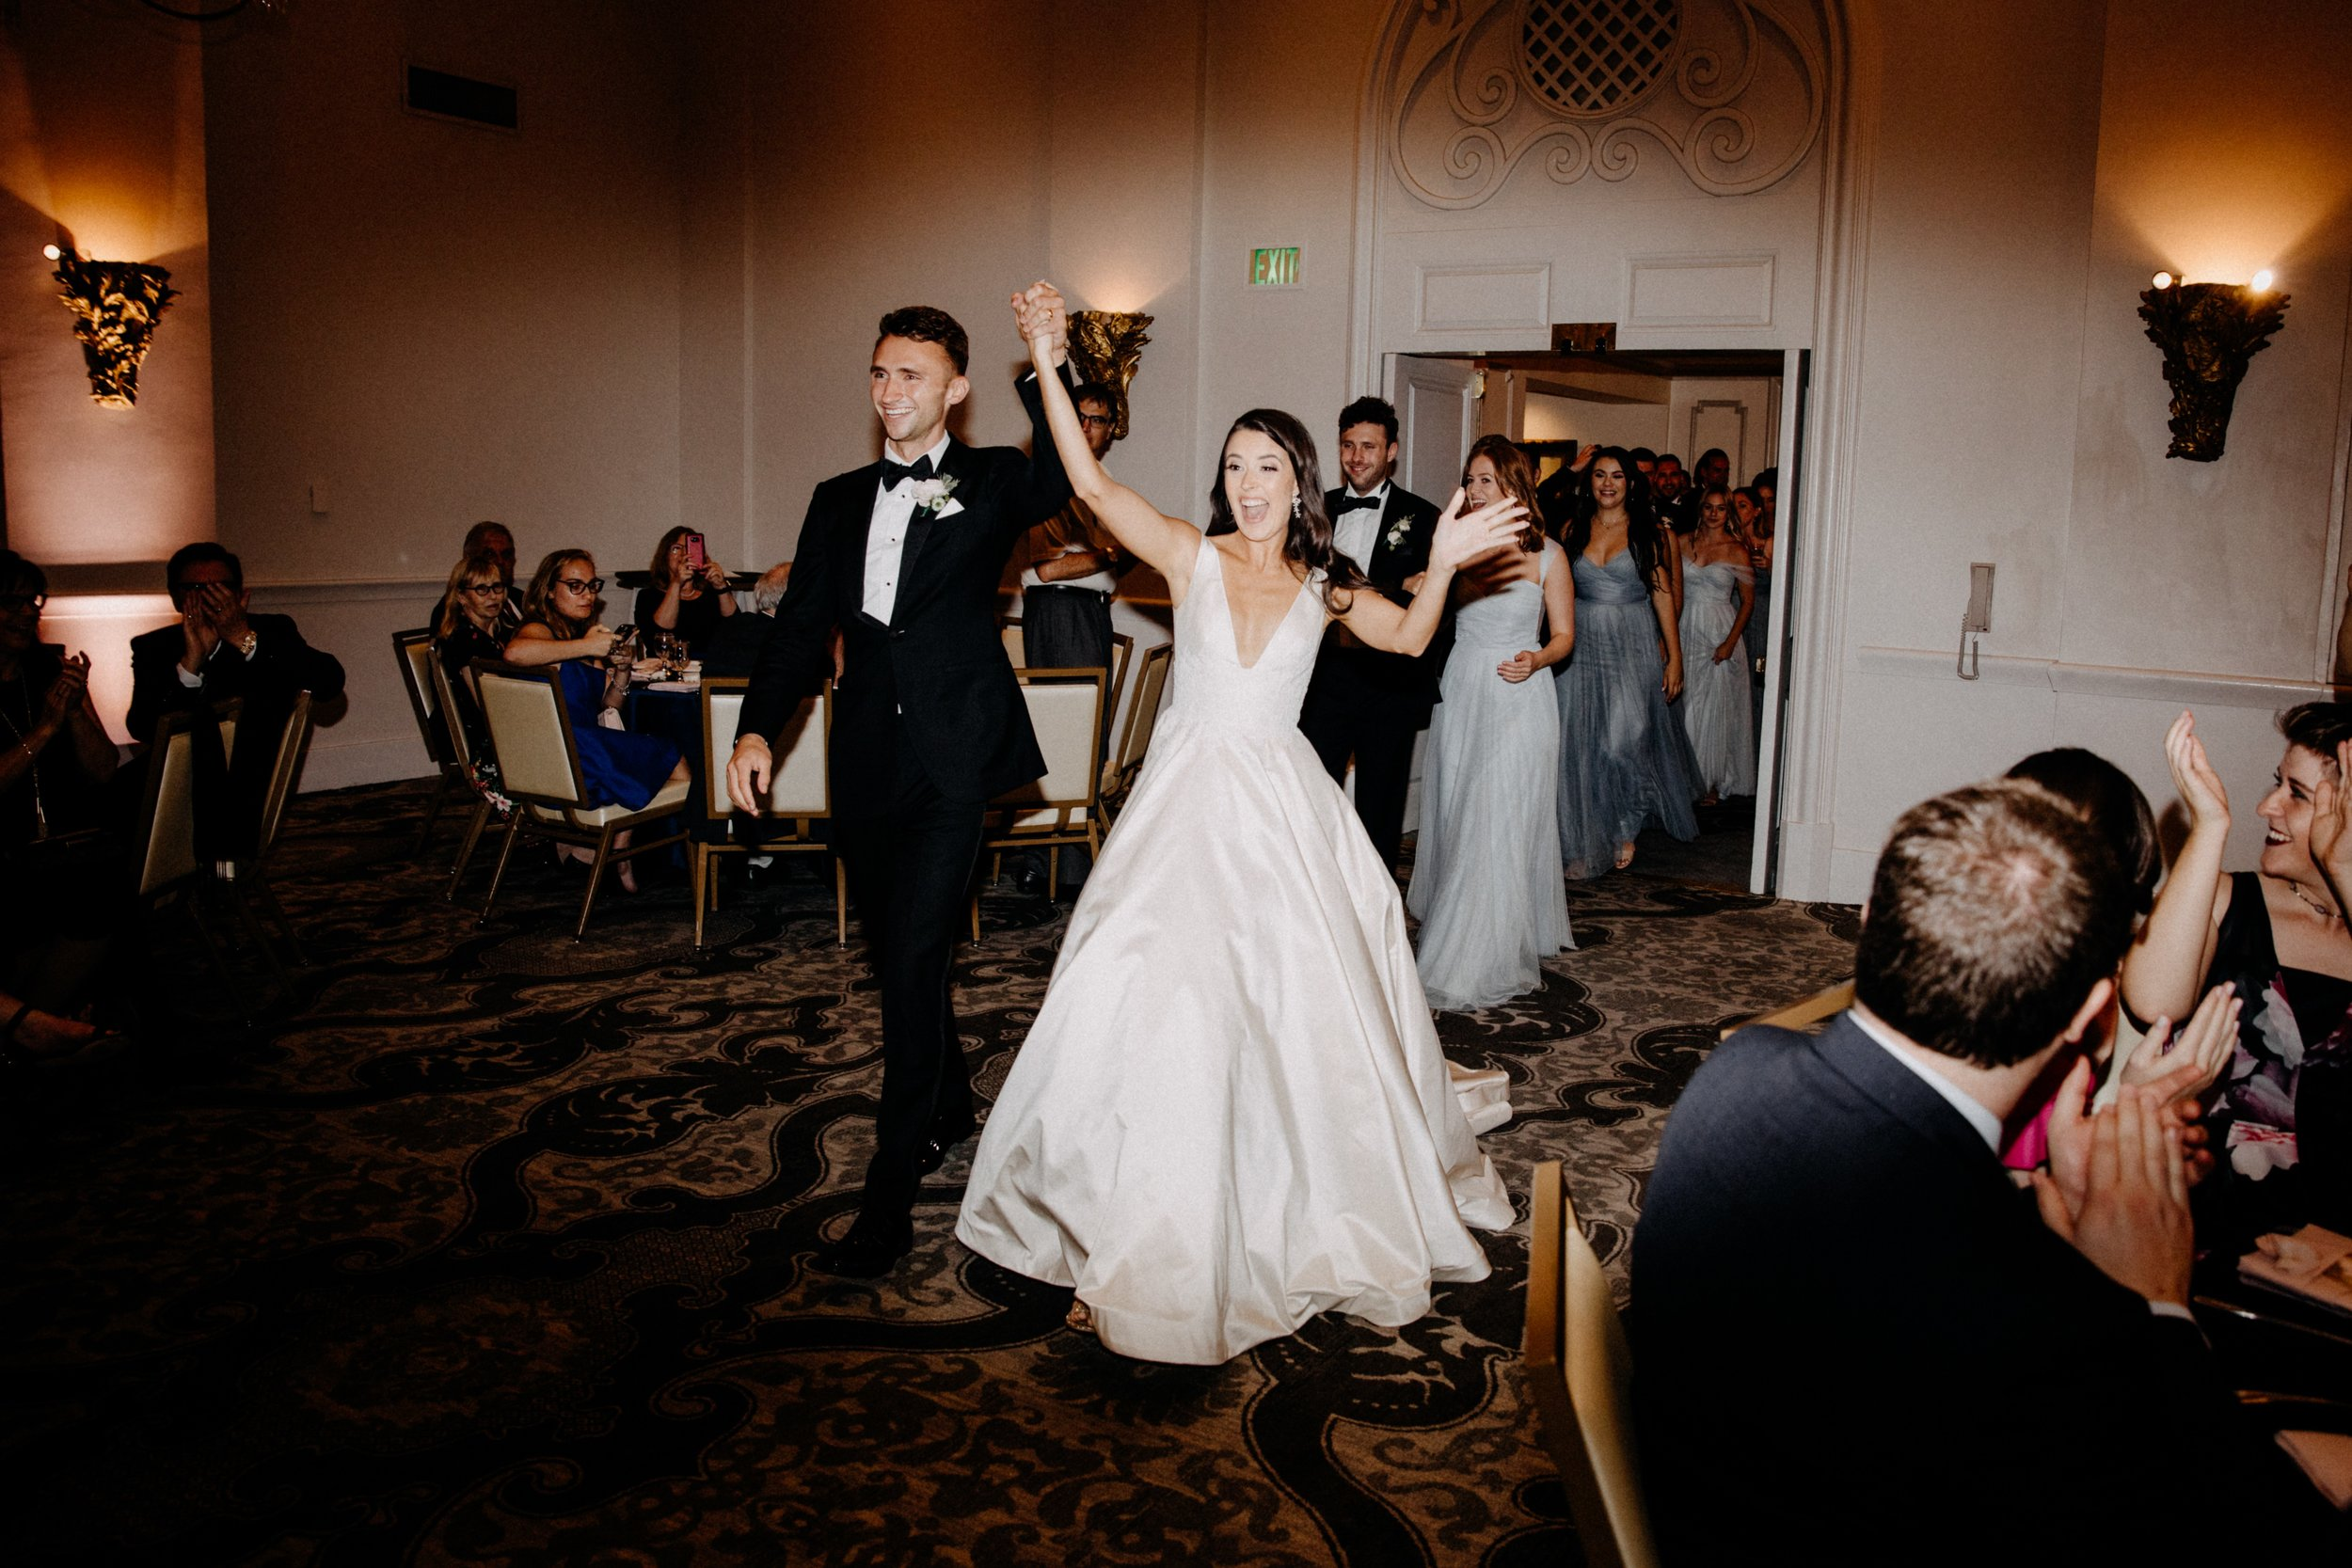 st-anthony-hotel-wedding-photography-10129san-antonio.JPG